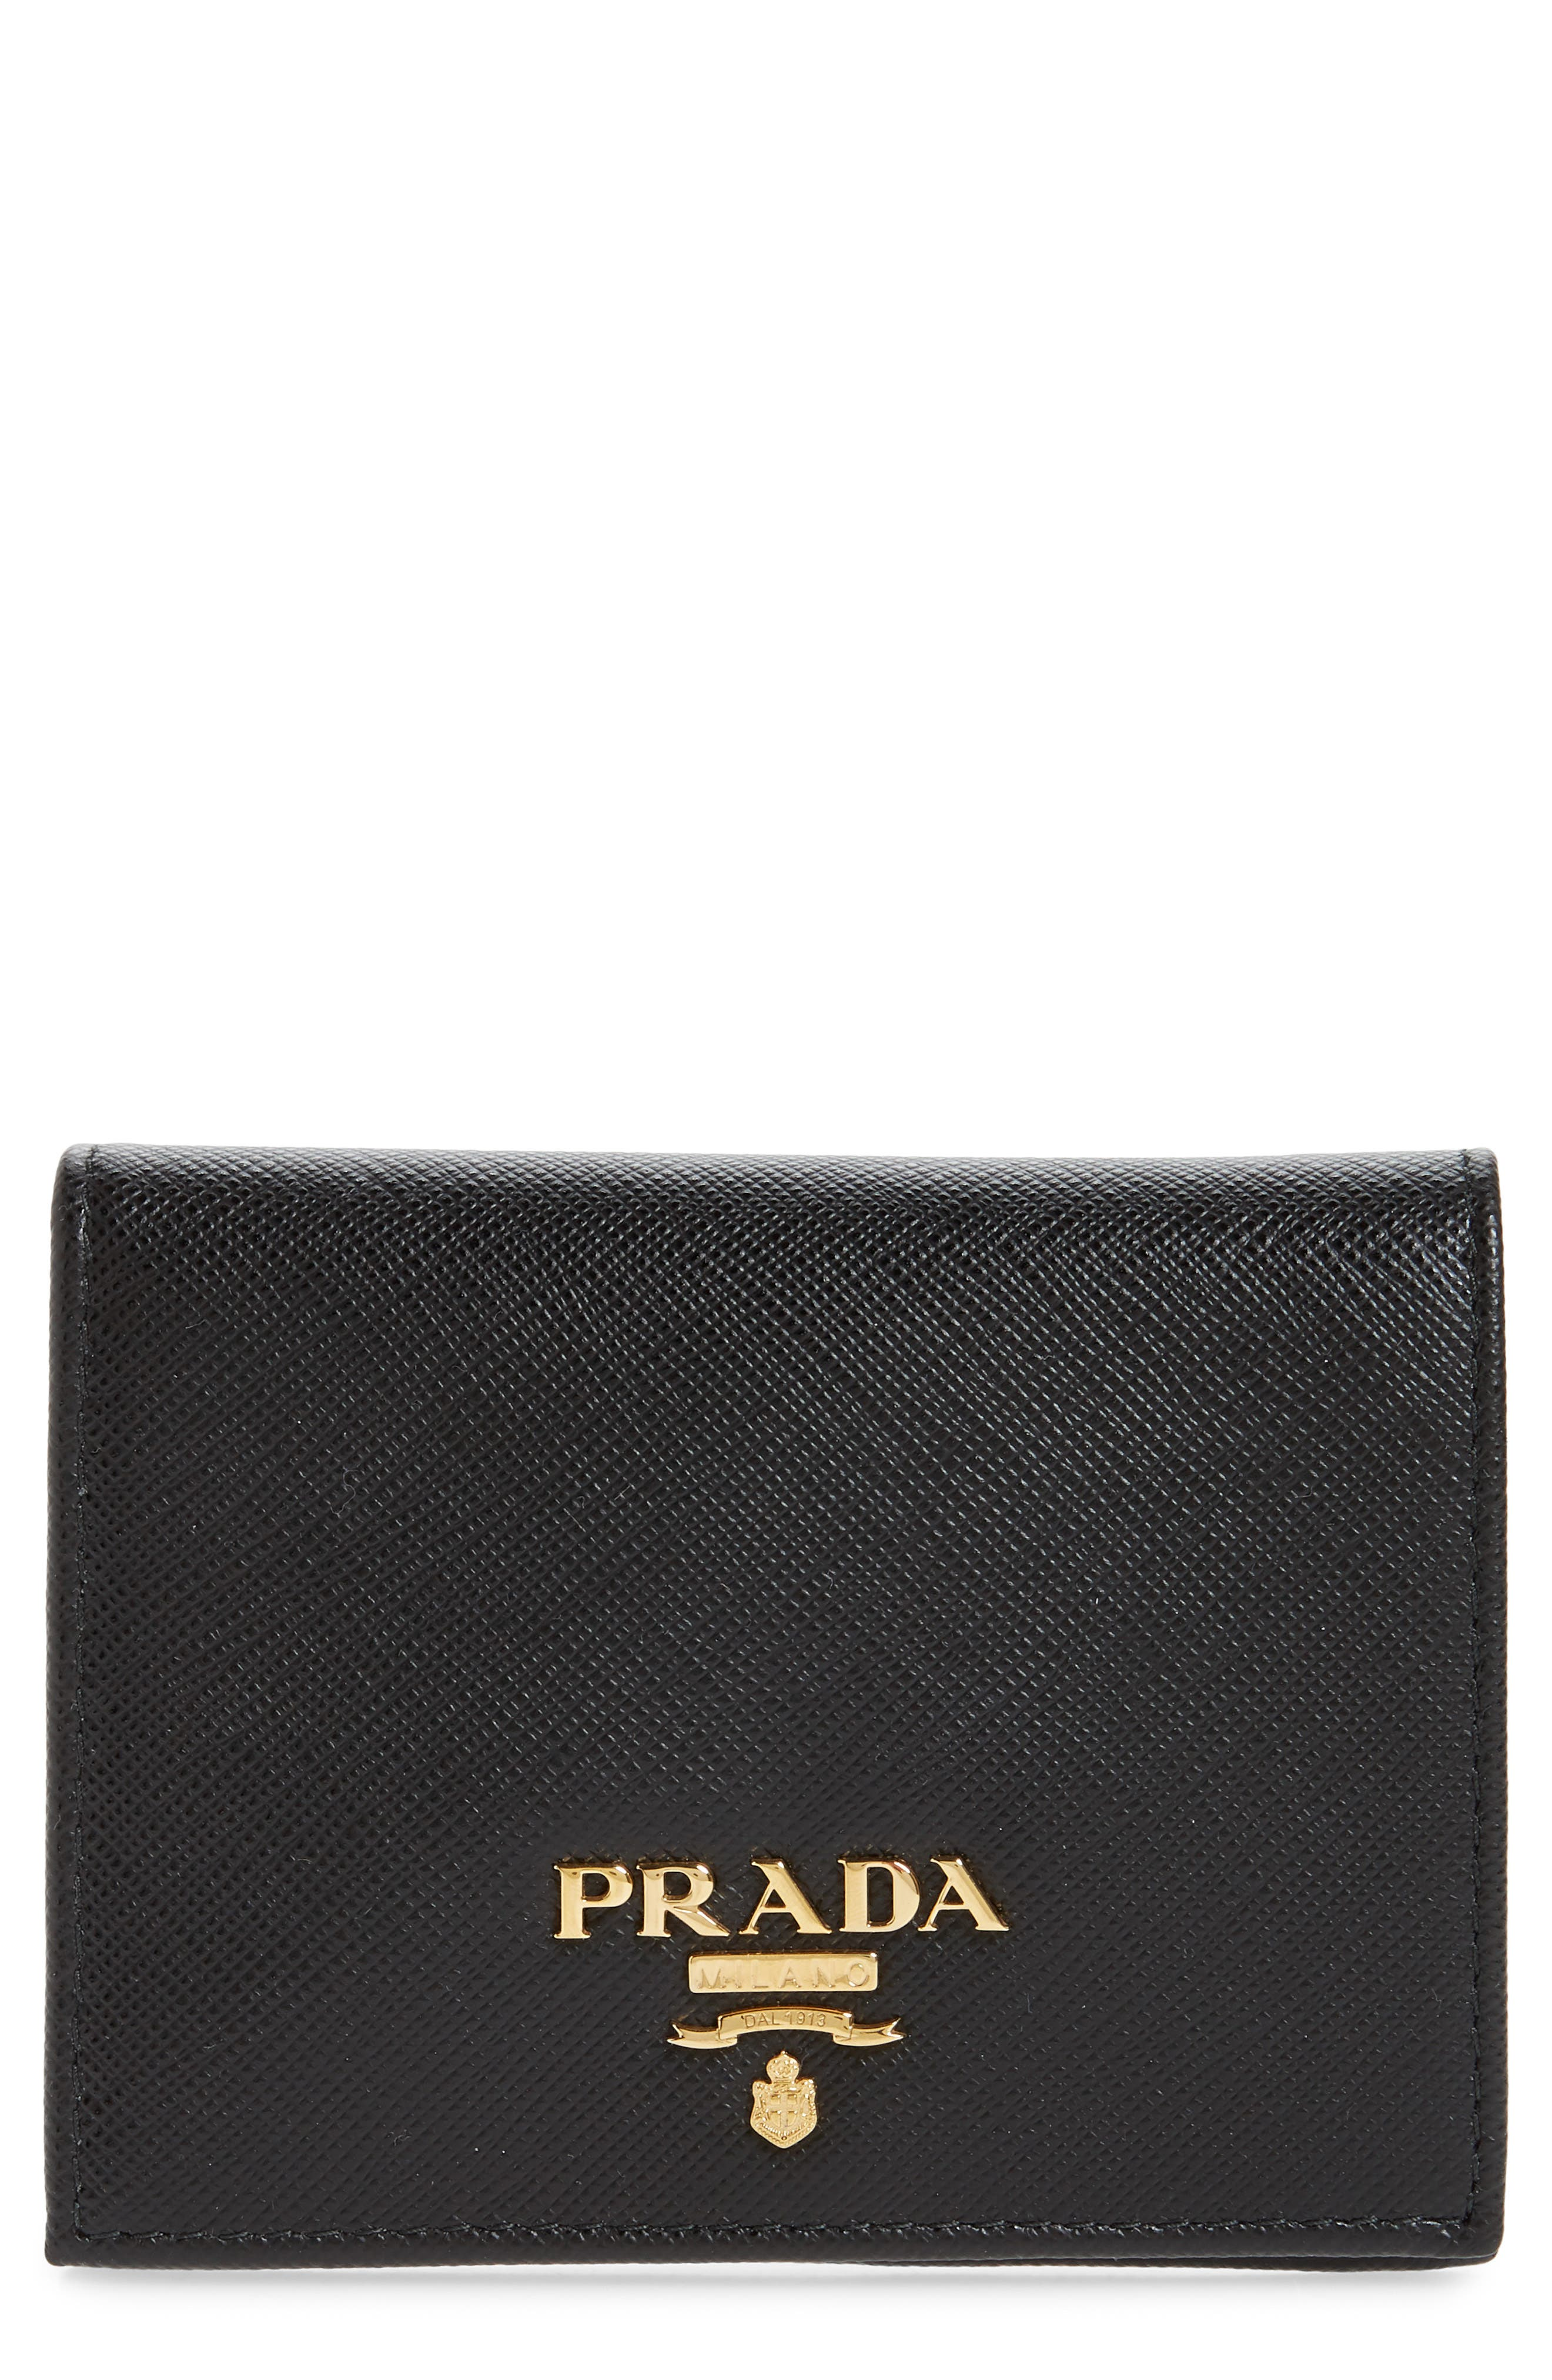 fa80a8612920 Prada Wallets & Card Cases for Women | Nordstrom